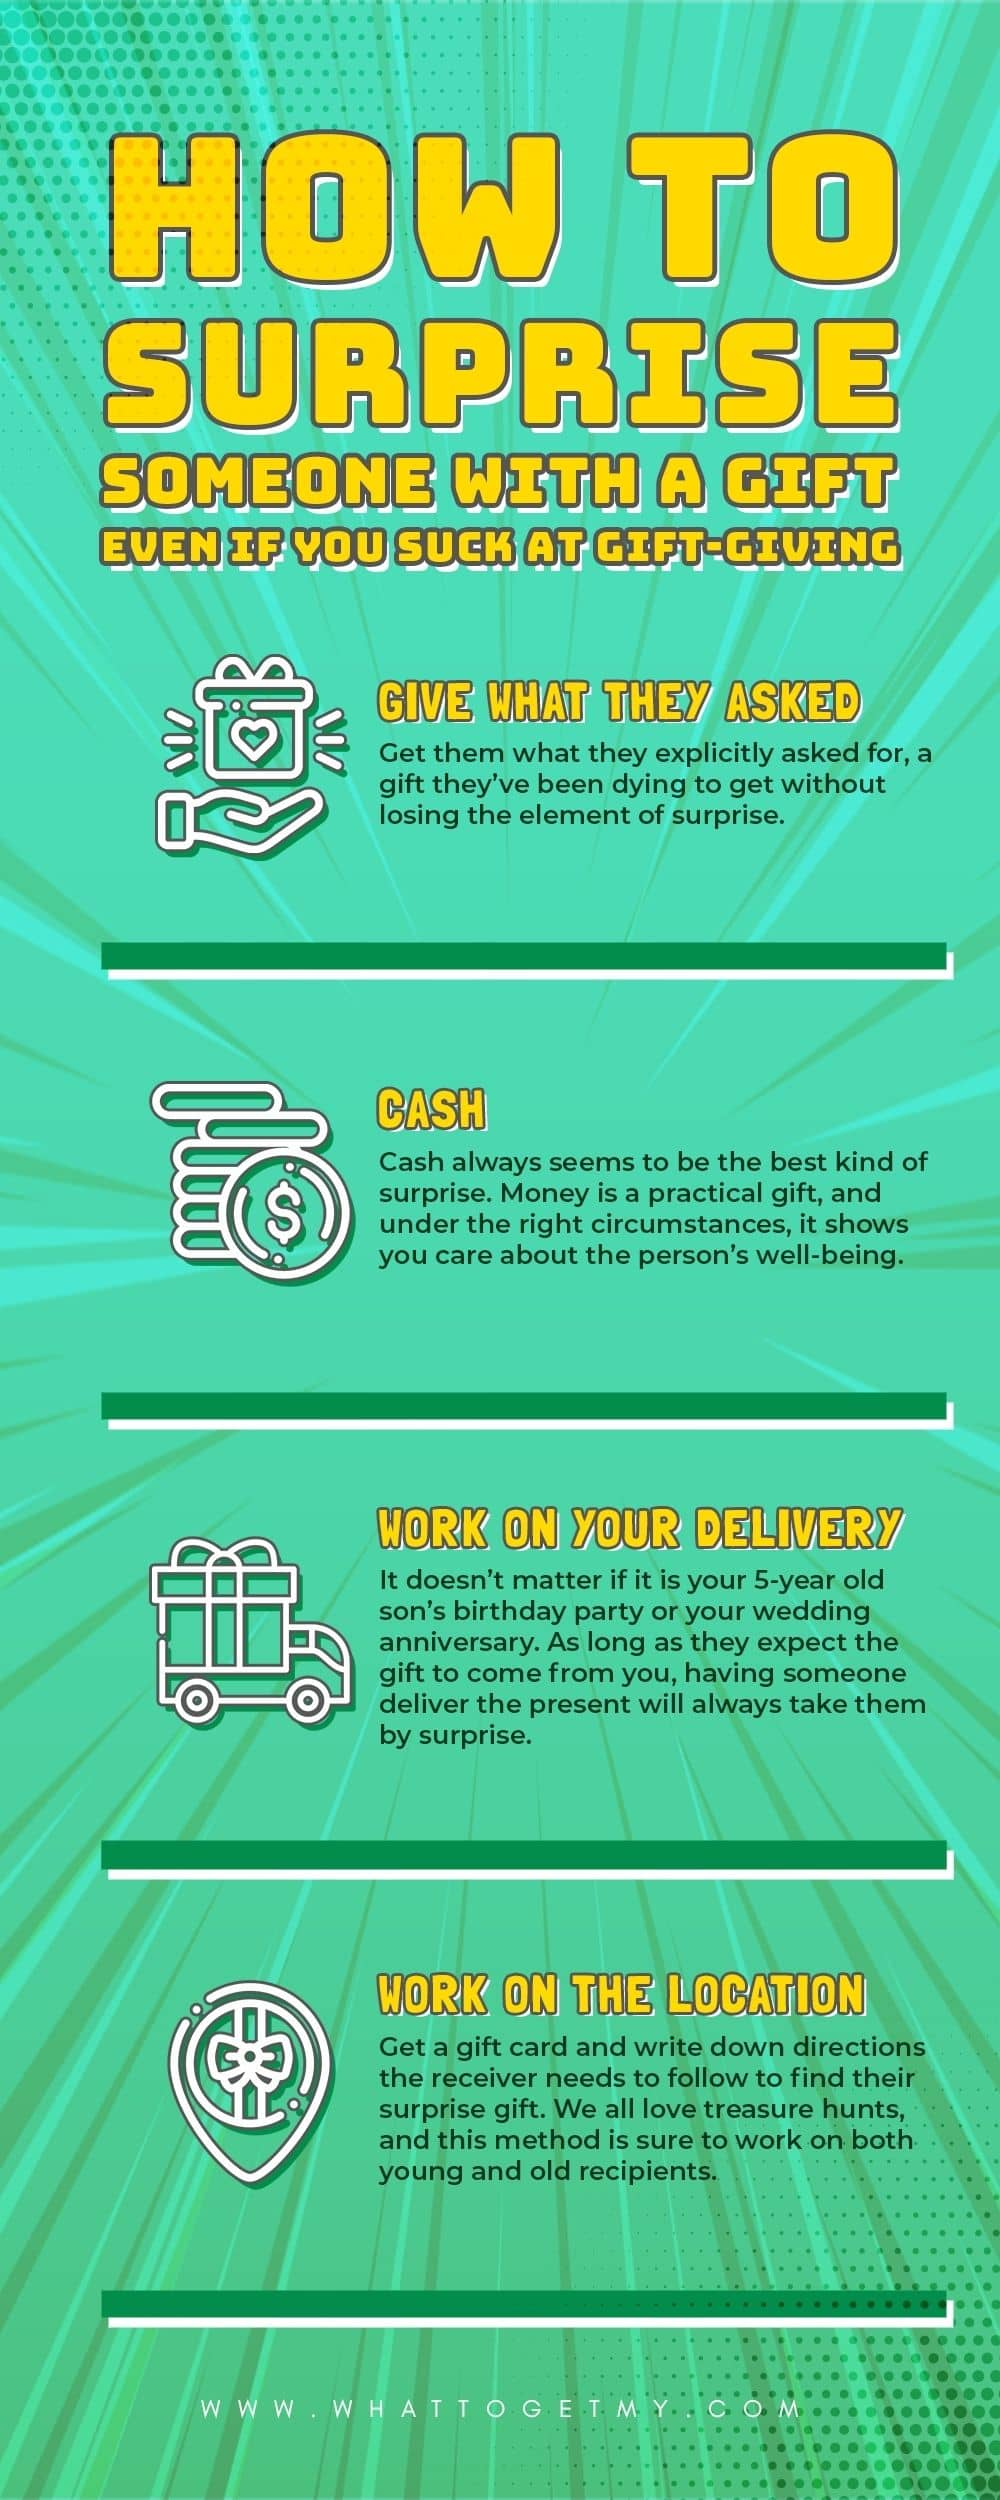 Infographic How to Surprise Someone with a Gift Even If You Suck at Gift-Giving